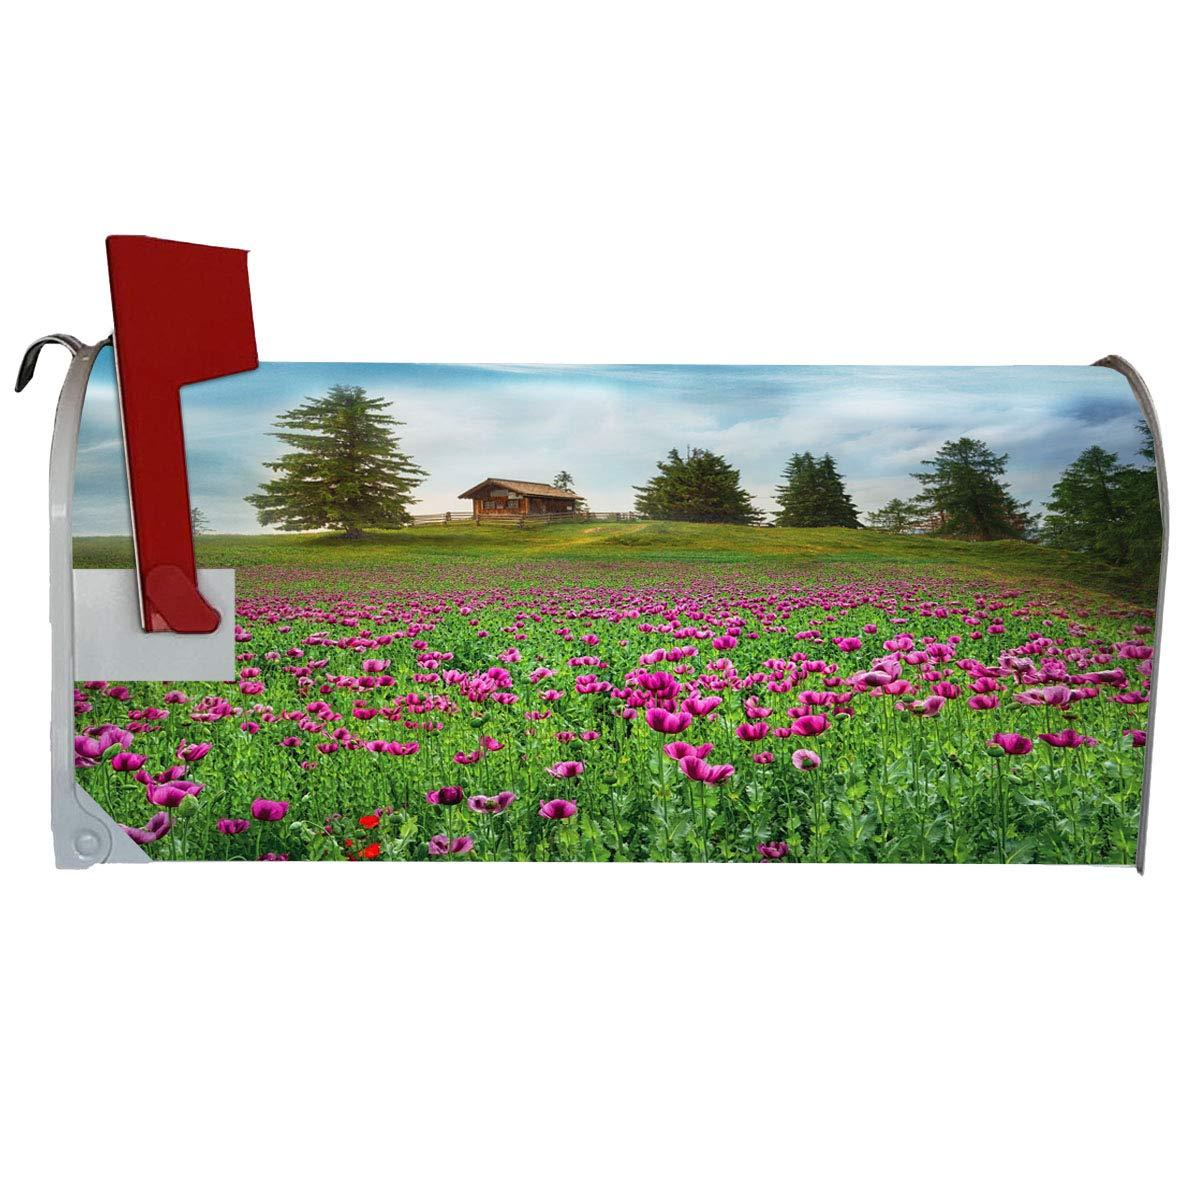 VWAQ Flower Field Mailbox Cover Decorative Spring Mailbox Magnet - MBM7 - VWAQ Vinyl Wall Art Quotes and Prints